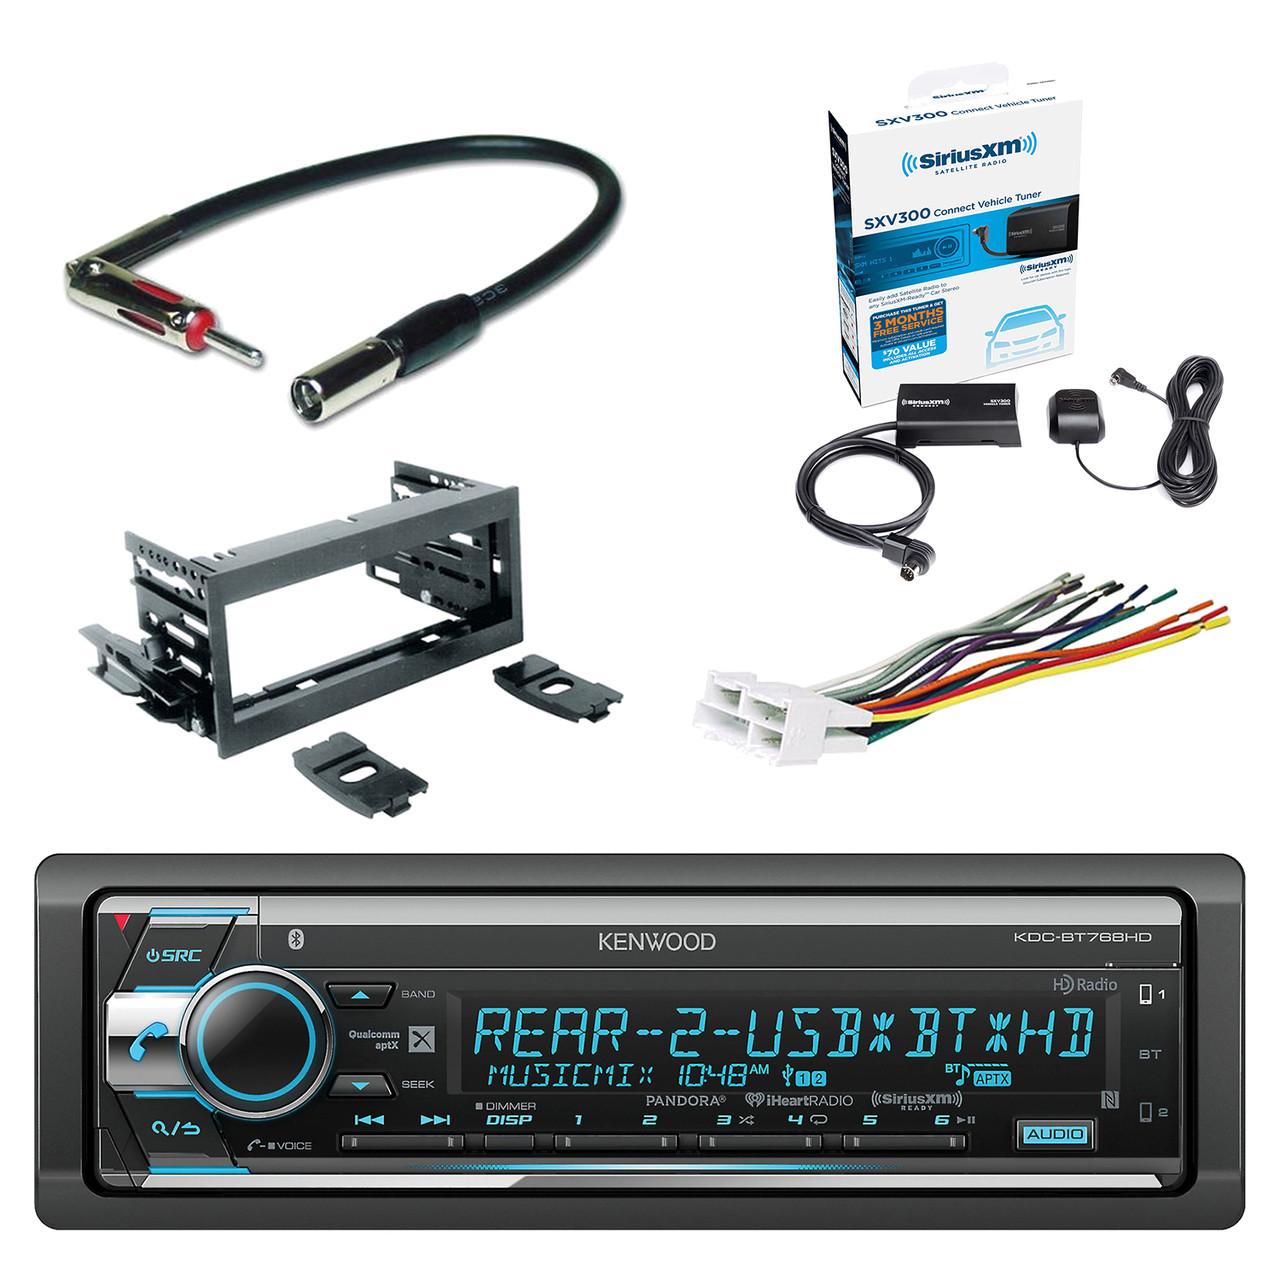 medium resolution of kenwood single din cd am fm car audio receiver with bluetooth siriusxm satellite radio vehicle tuner kit scosche dash kit scosche gm micro delco antenna